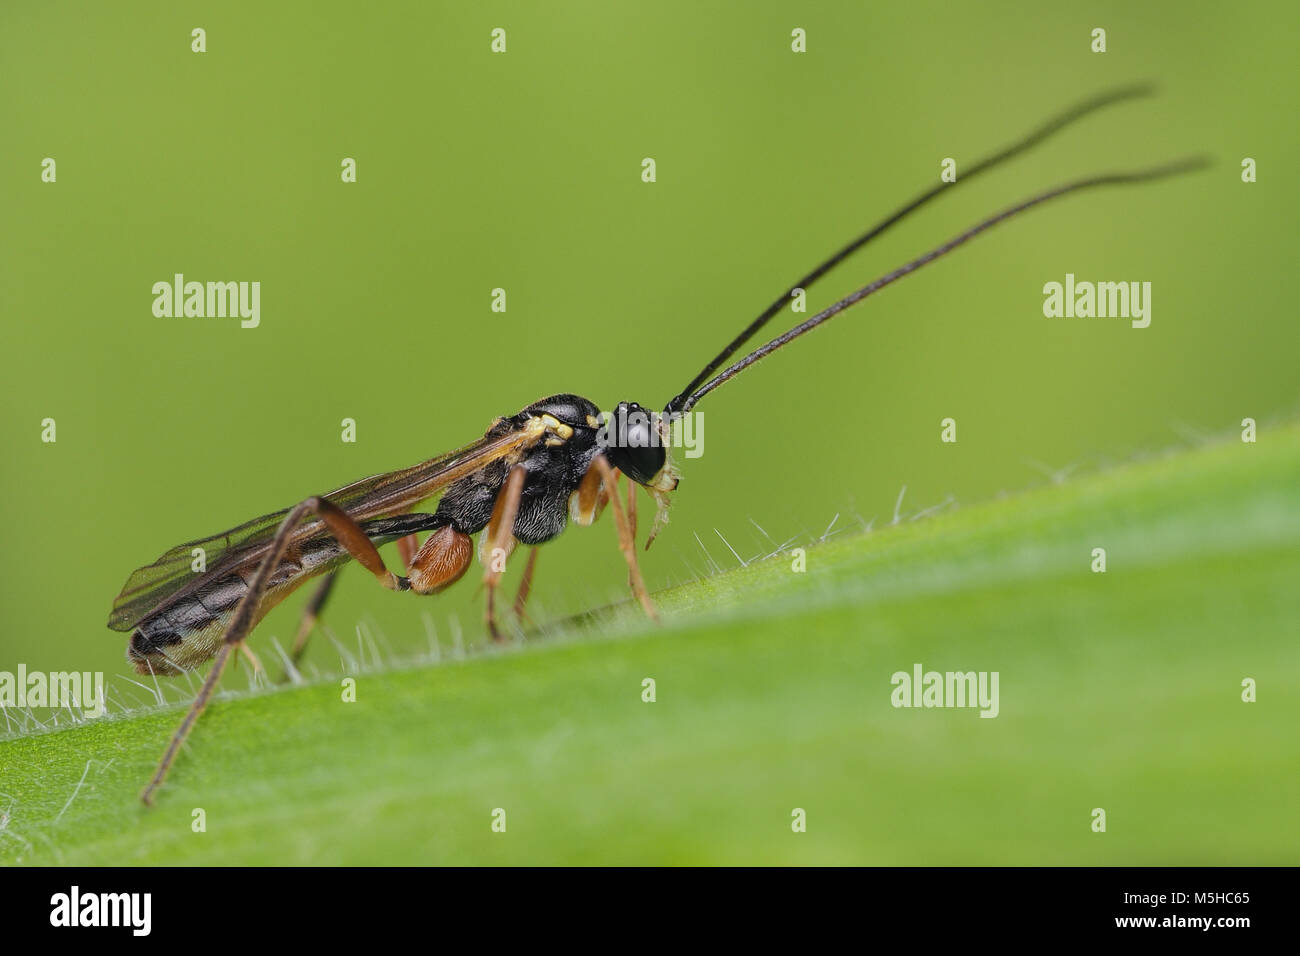 Ichneumonid Wasp perched on a blade of grass. Tipperary, Ireland - Stock Image